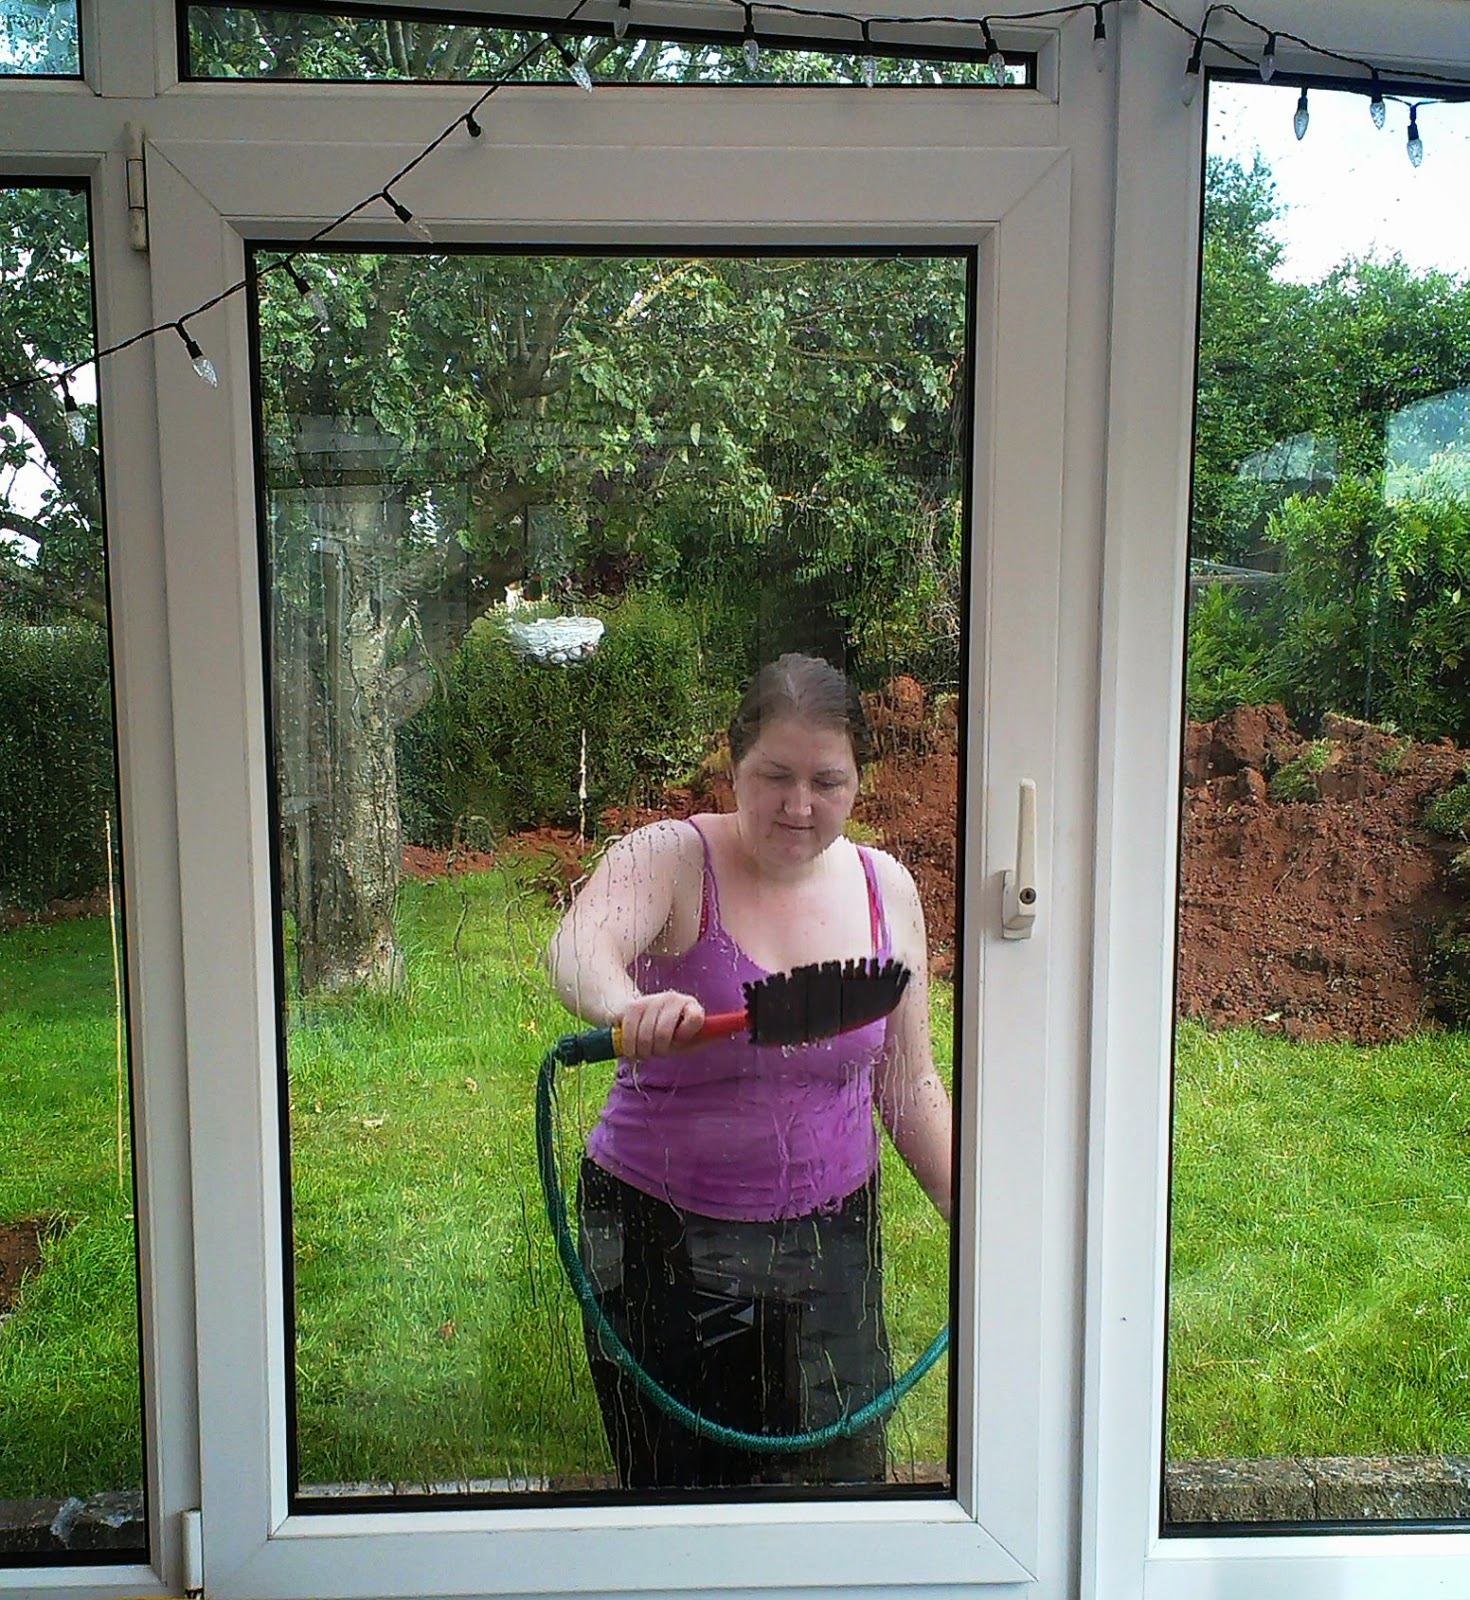 Cleaning the conservatory